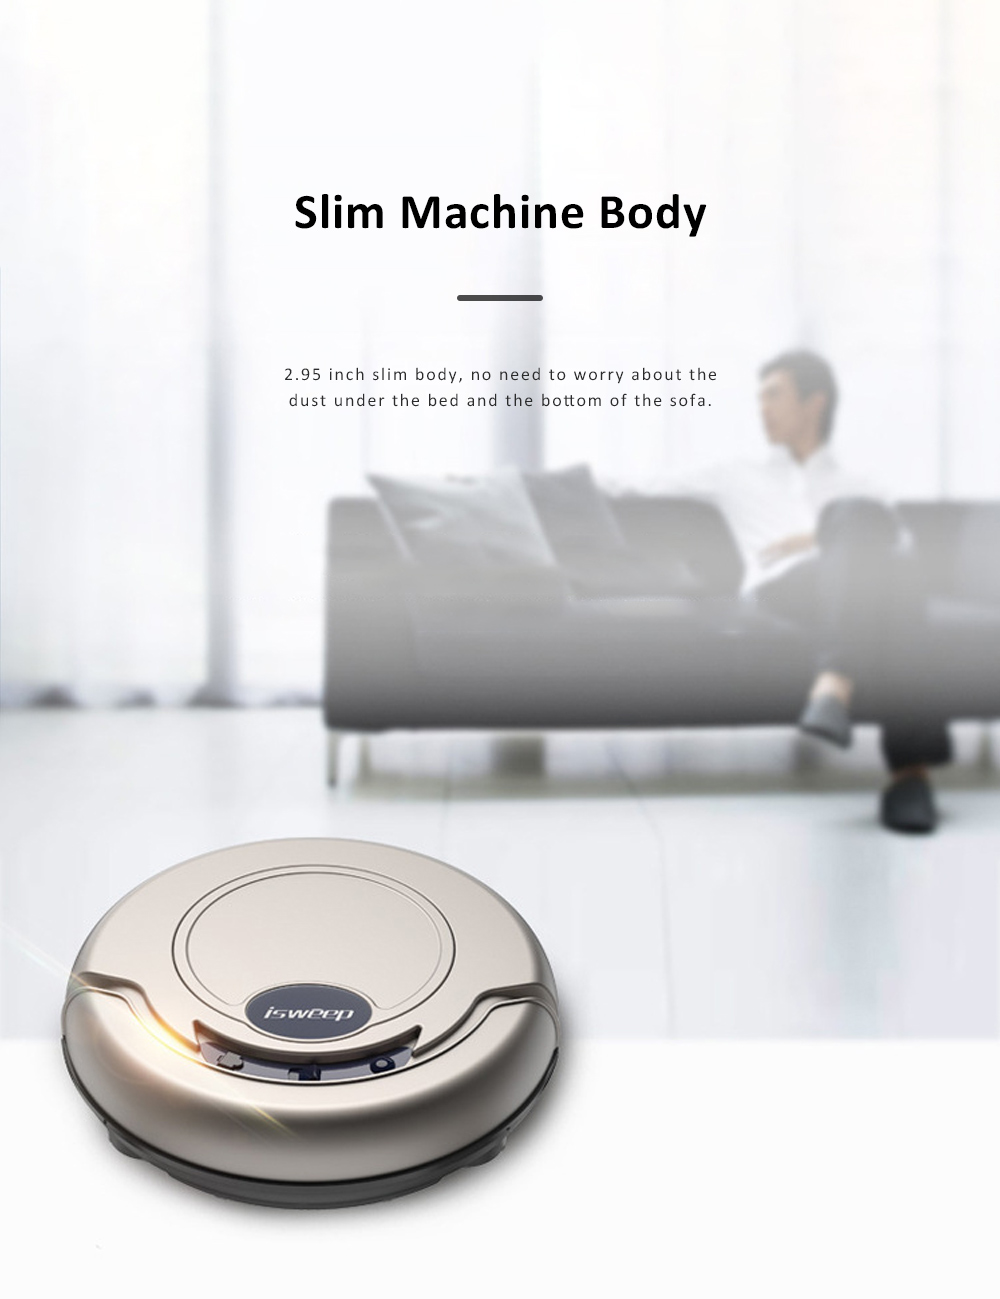 Home Cleaning Robotic Machine Vacuum Cleaner with 1200Pa Ultra Strong Suction and 1500mAh Battery for House cleaning and Air Purifying 7